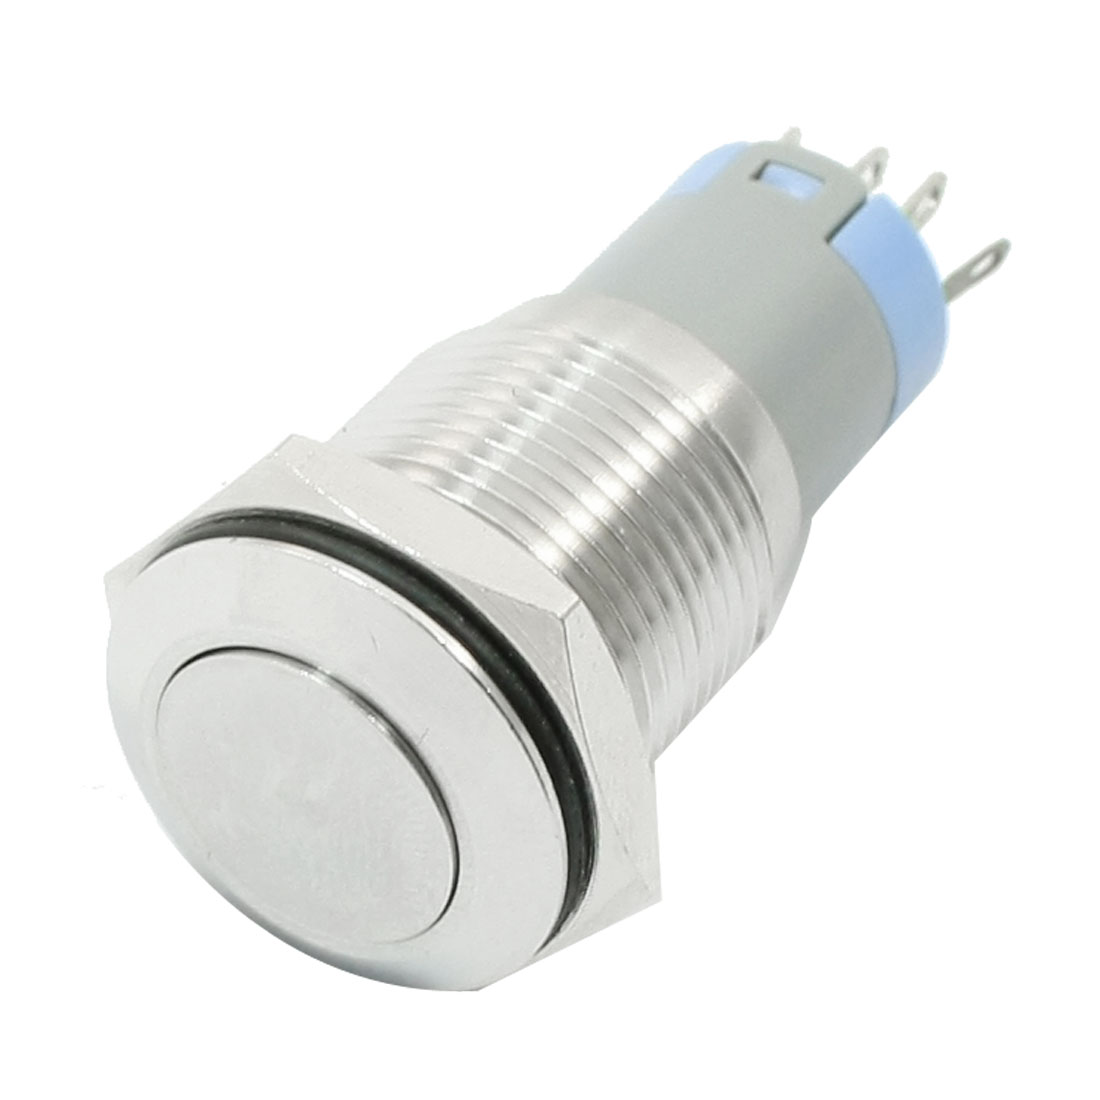 AC-250V-3A-5P-NO-NC-Momentary-Power-Control-16mm-Metal-Push-Button-Switch